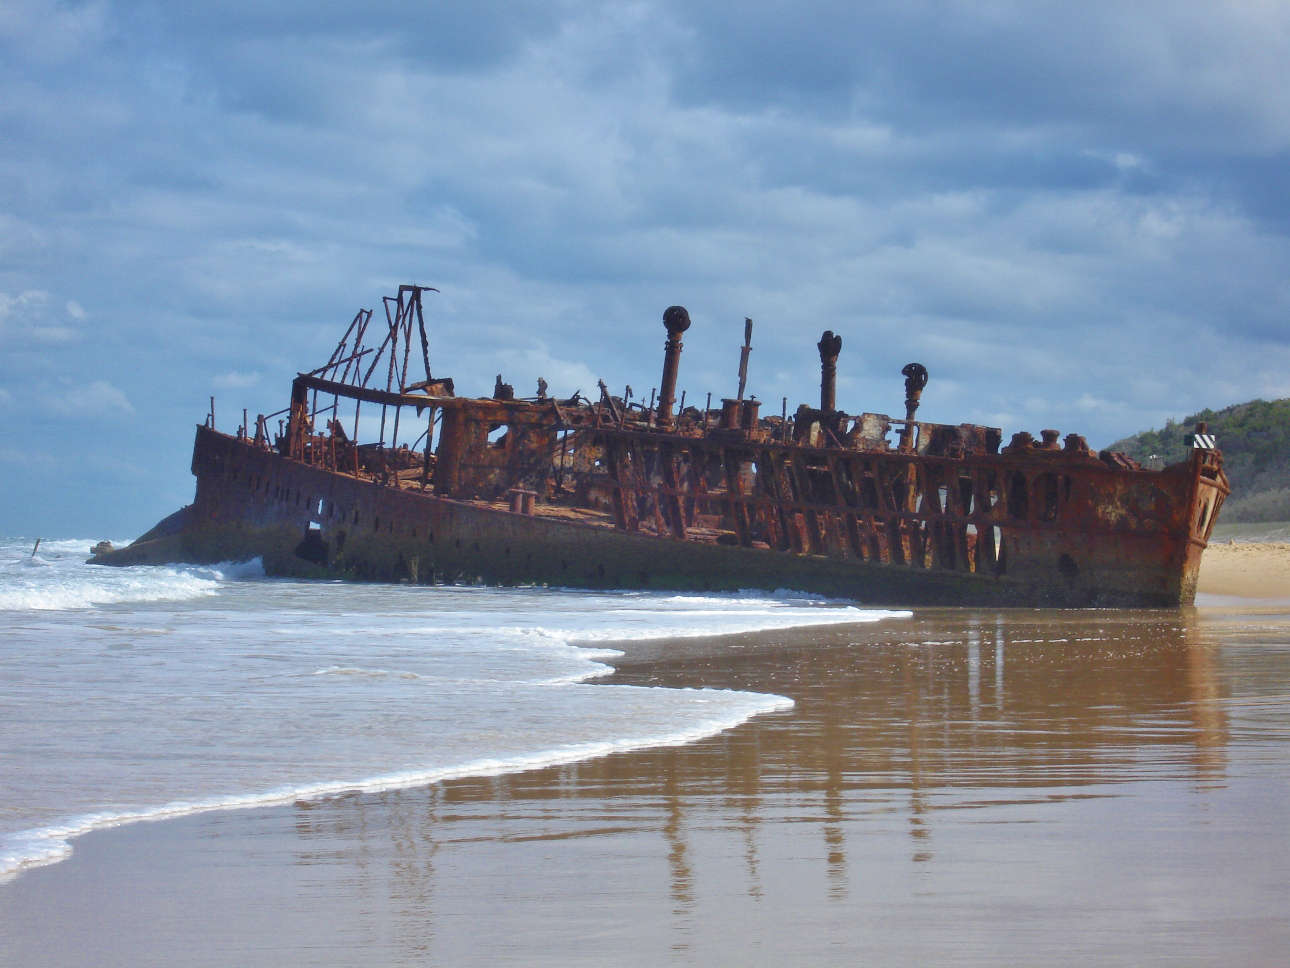 Maheno ship wreck is a picturesque spot on the east coast of Fraser Island